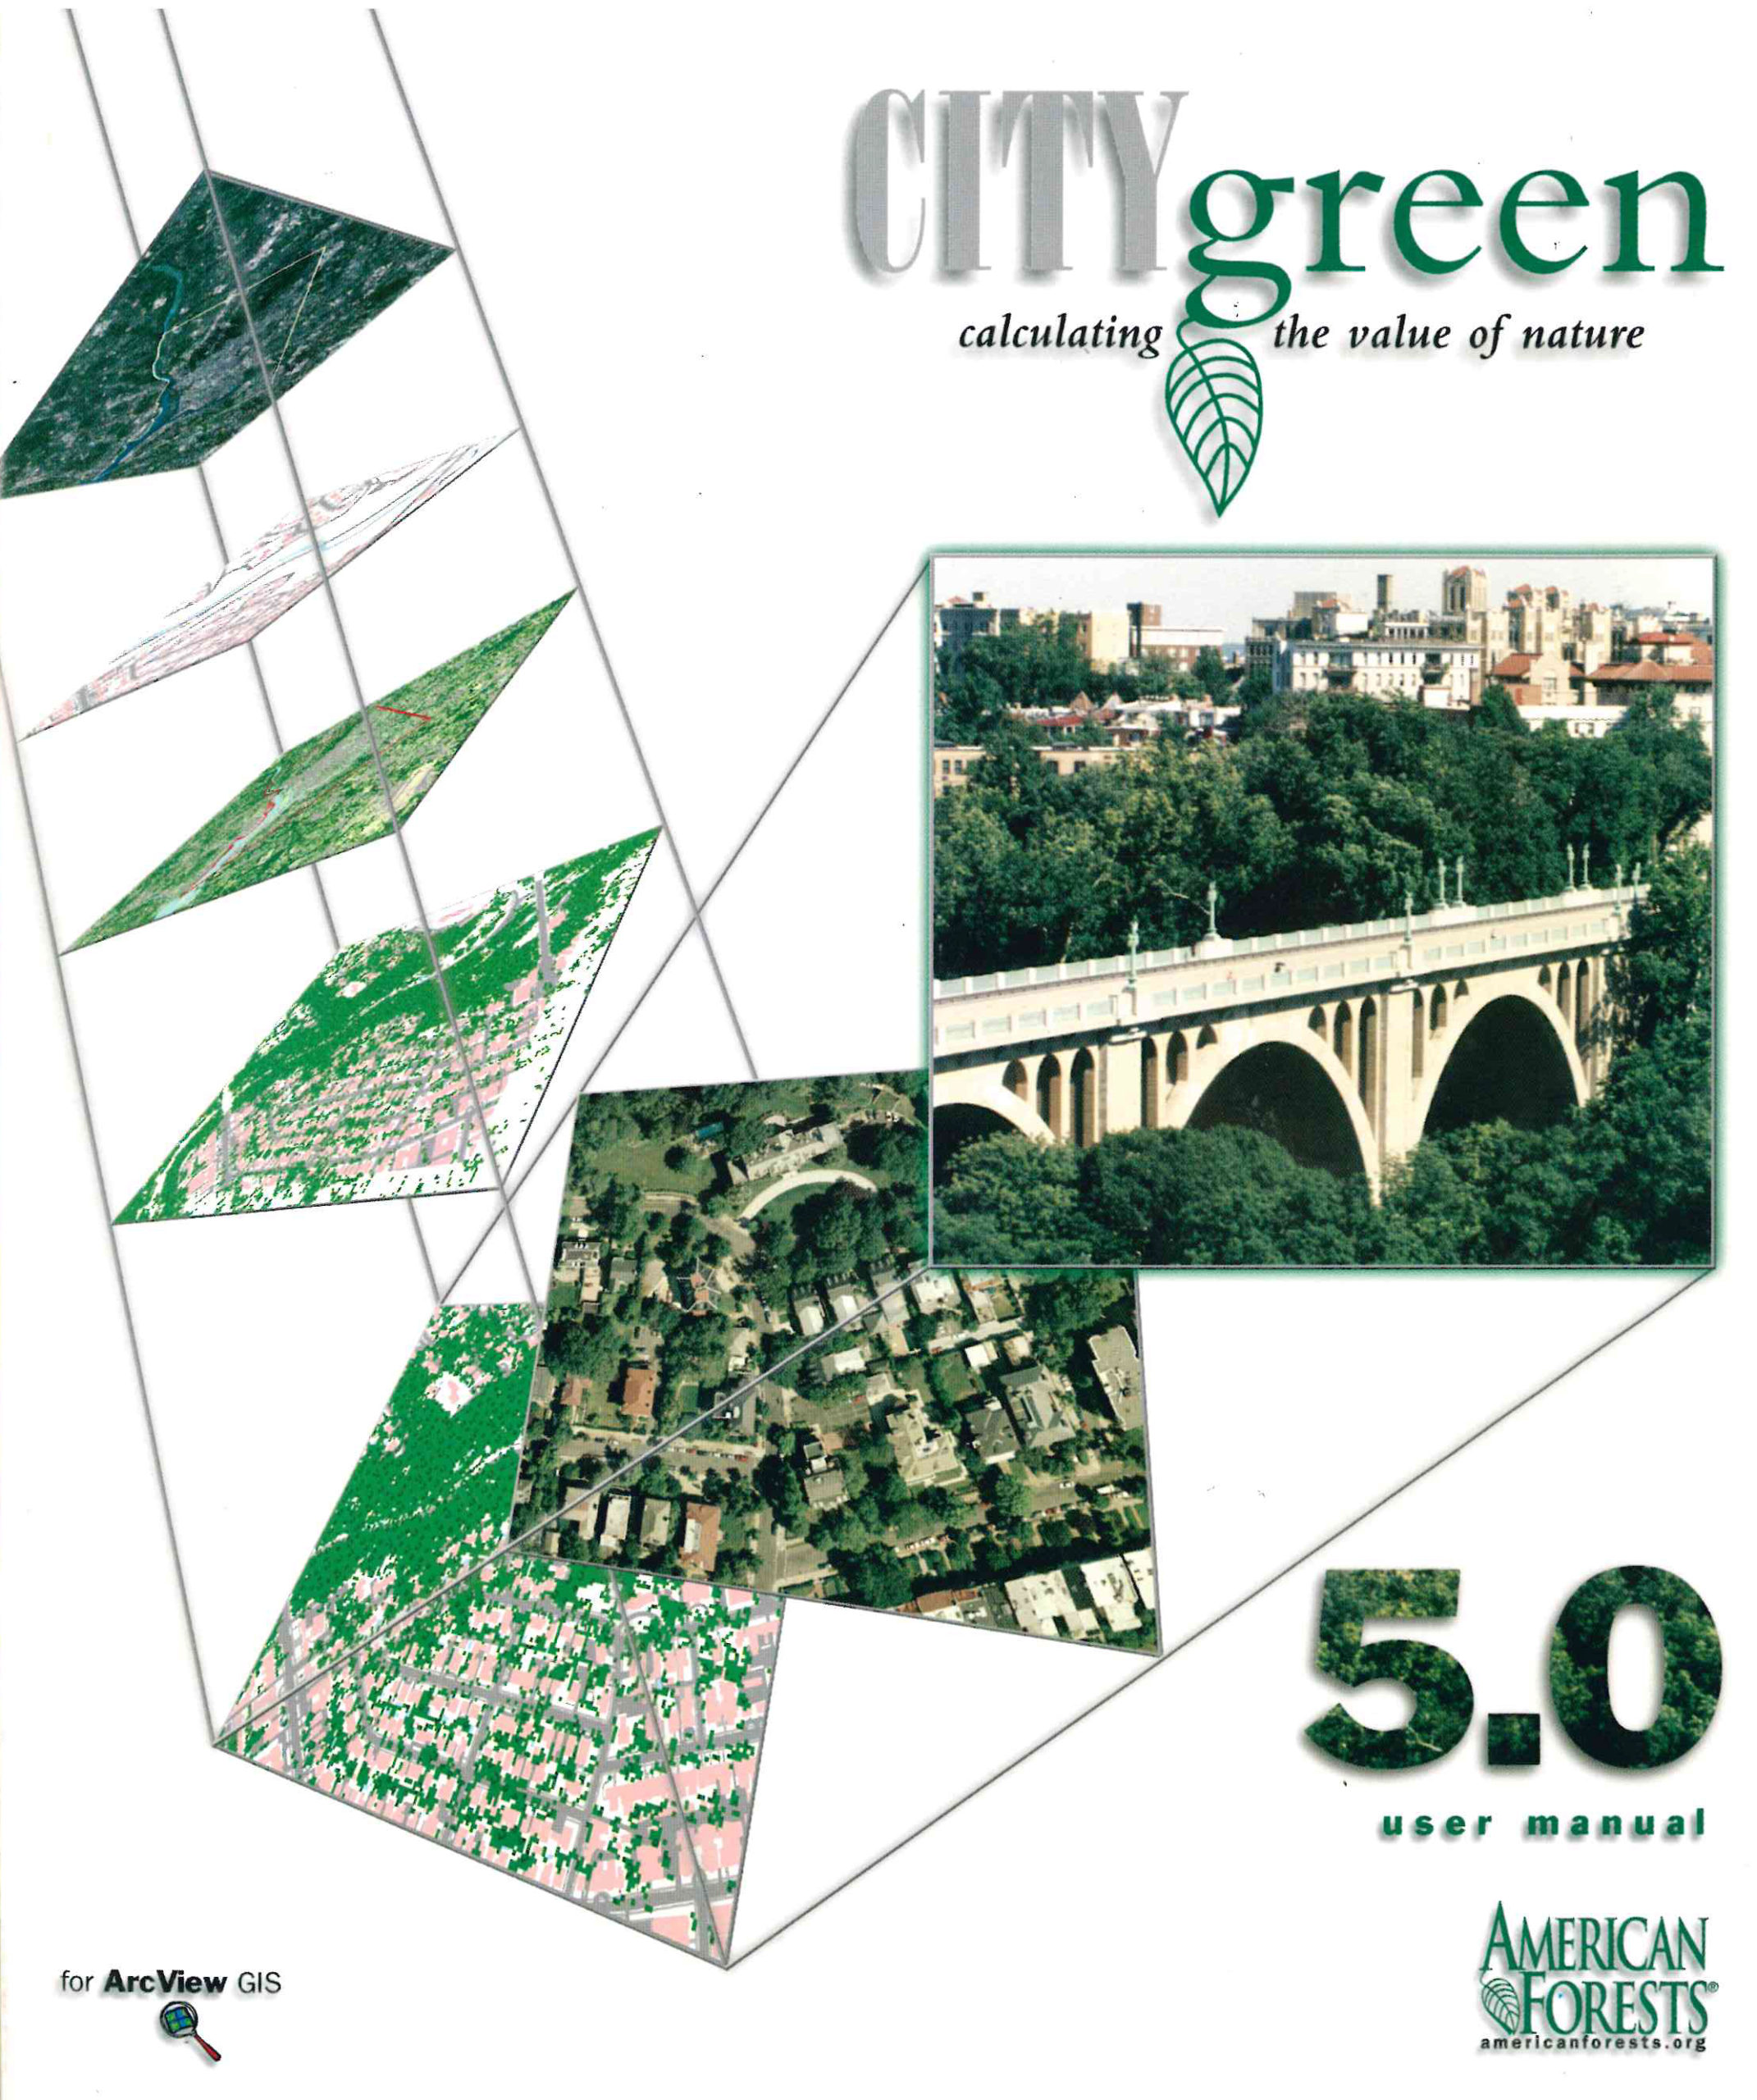 In 1996, American Forests released CITYgreen, a software planning tool for mapping urban ecosystems and calculating their value. This later was developed into the more known i-Tree GIS program used today.